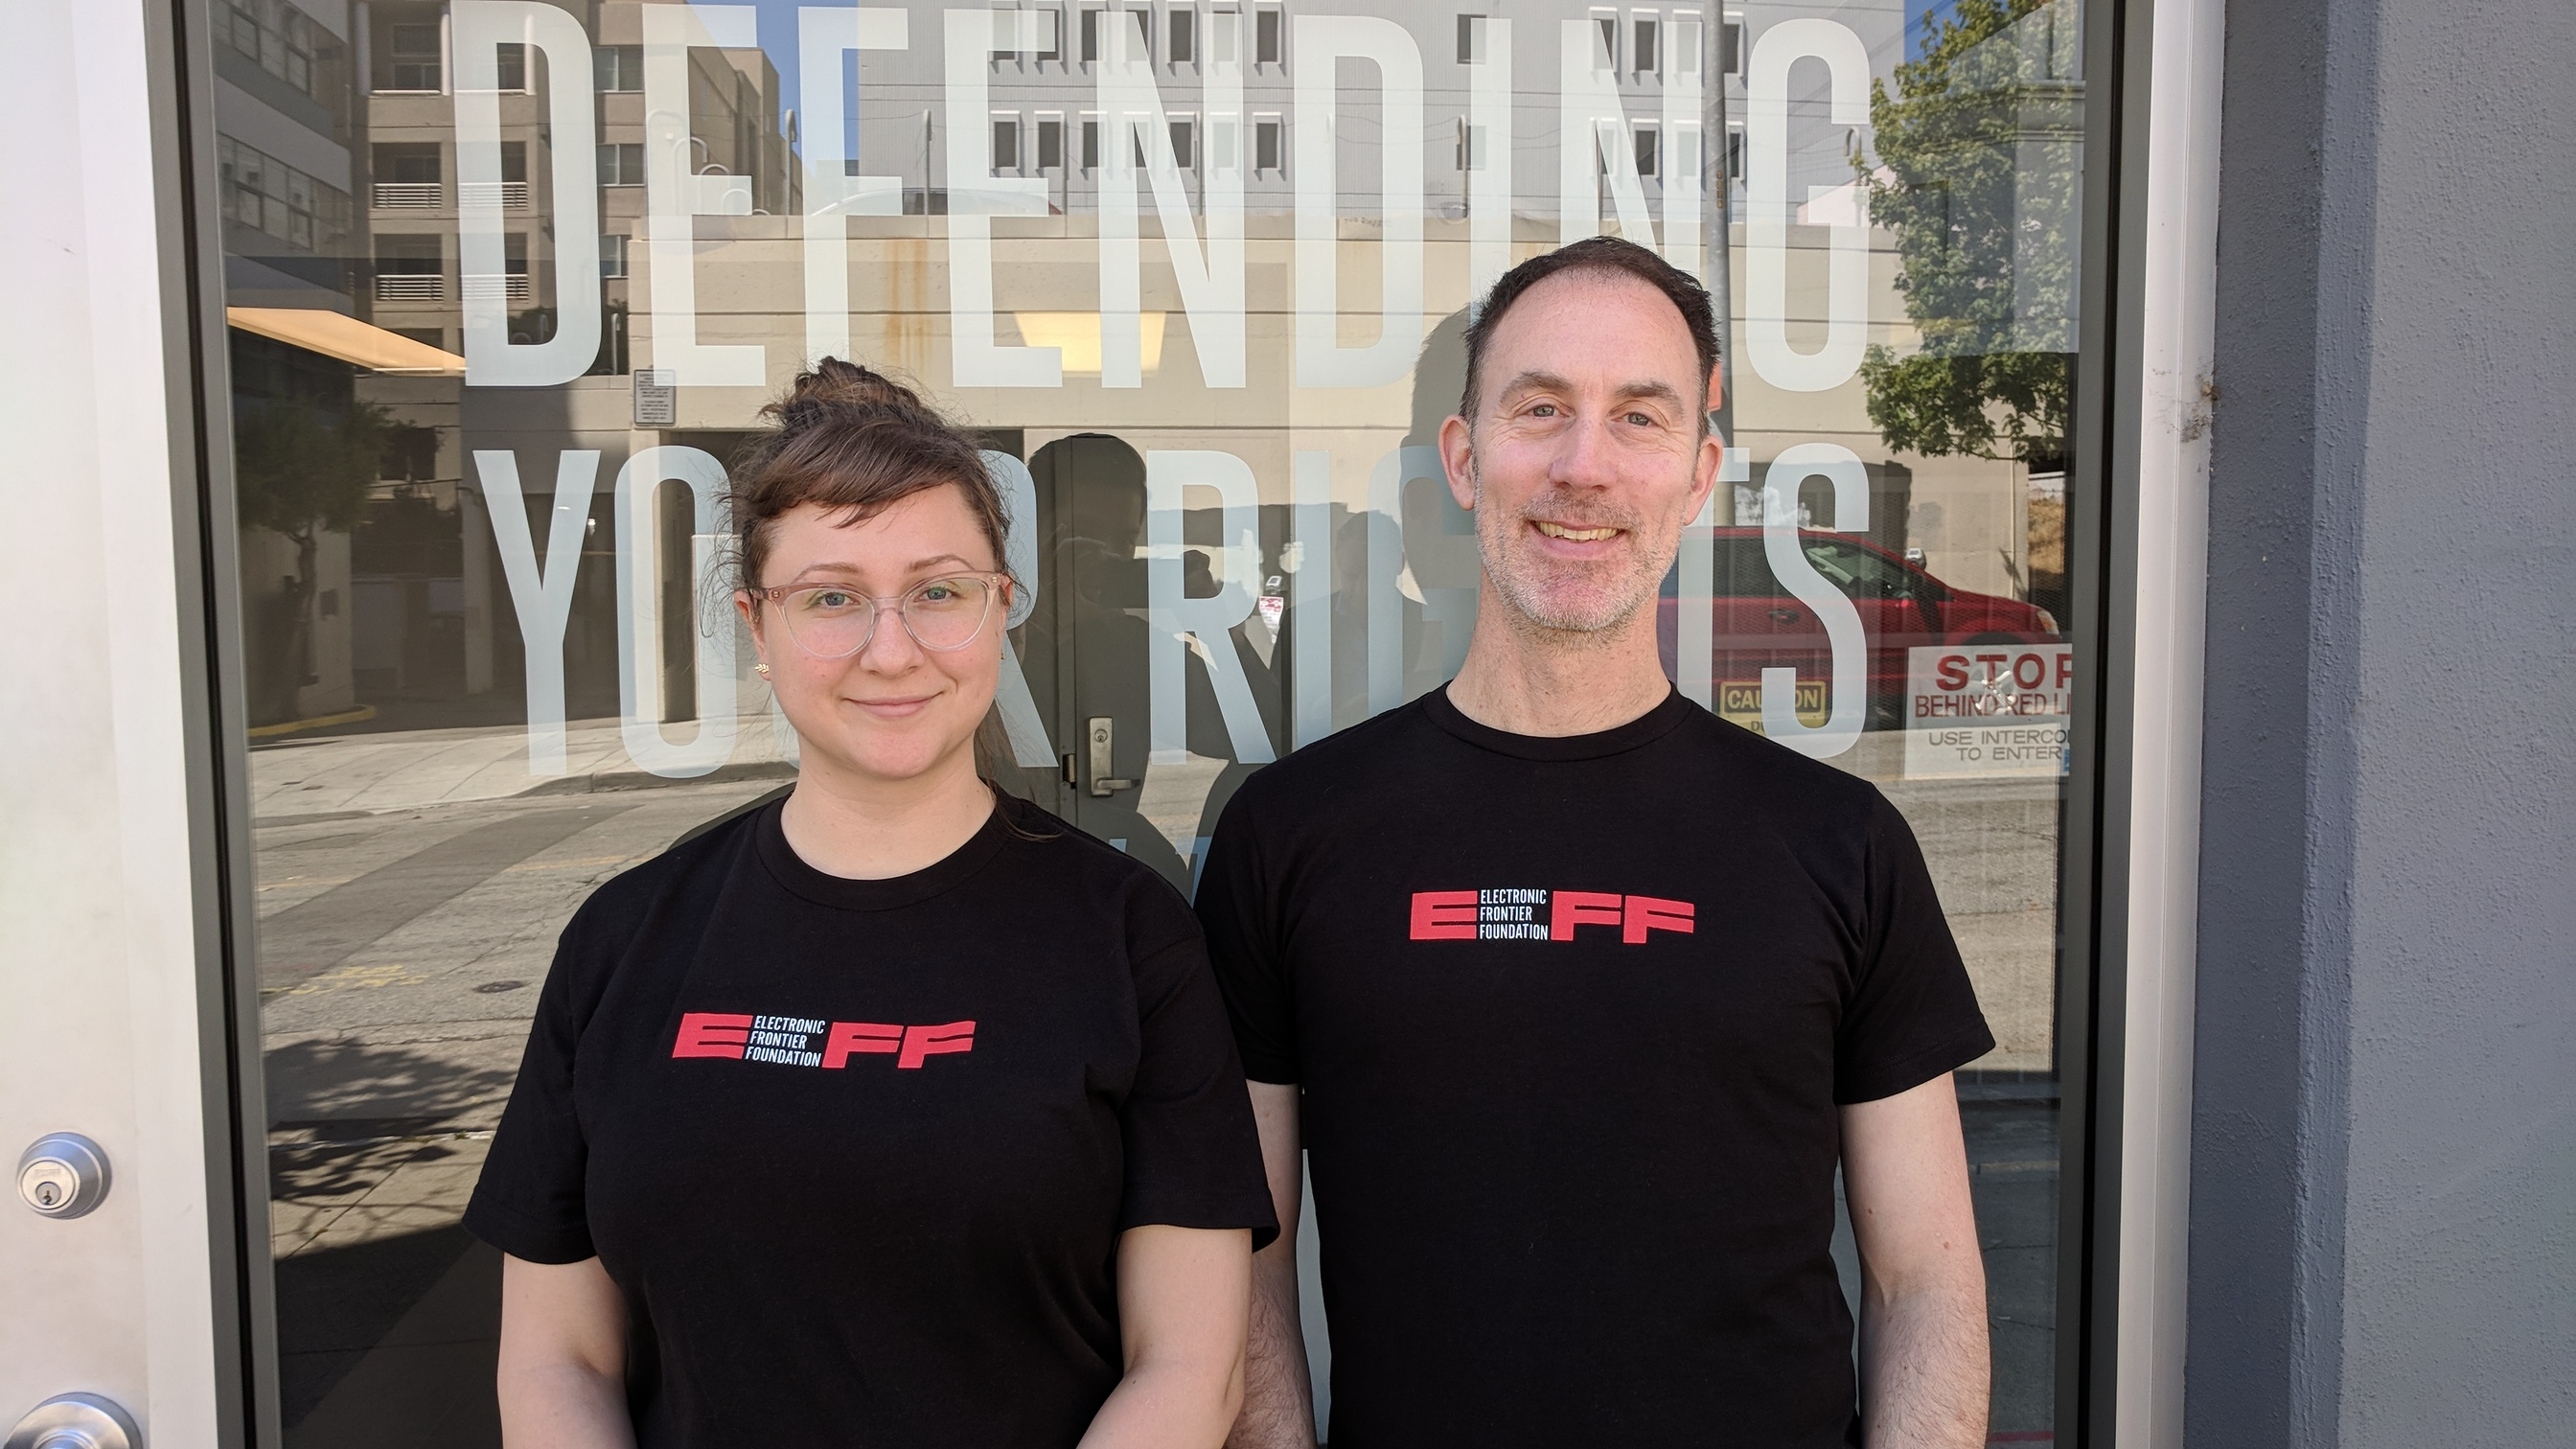 A photo of two EFF staffers wearing the new shirt.